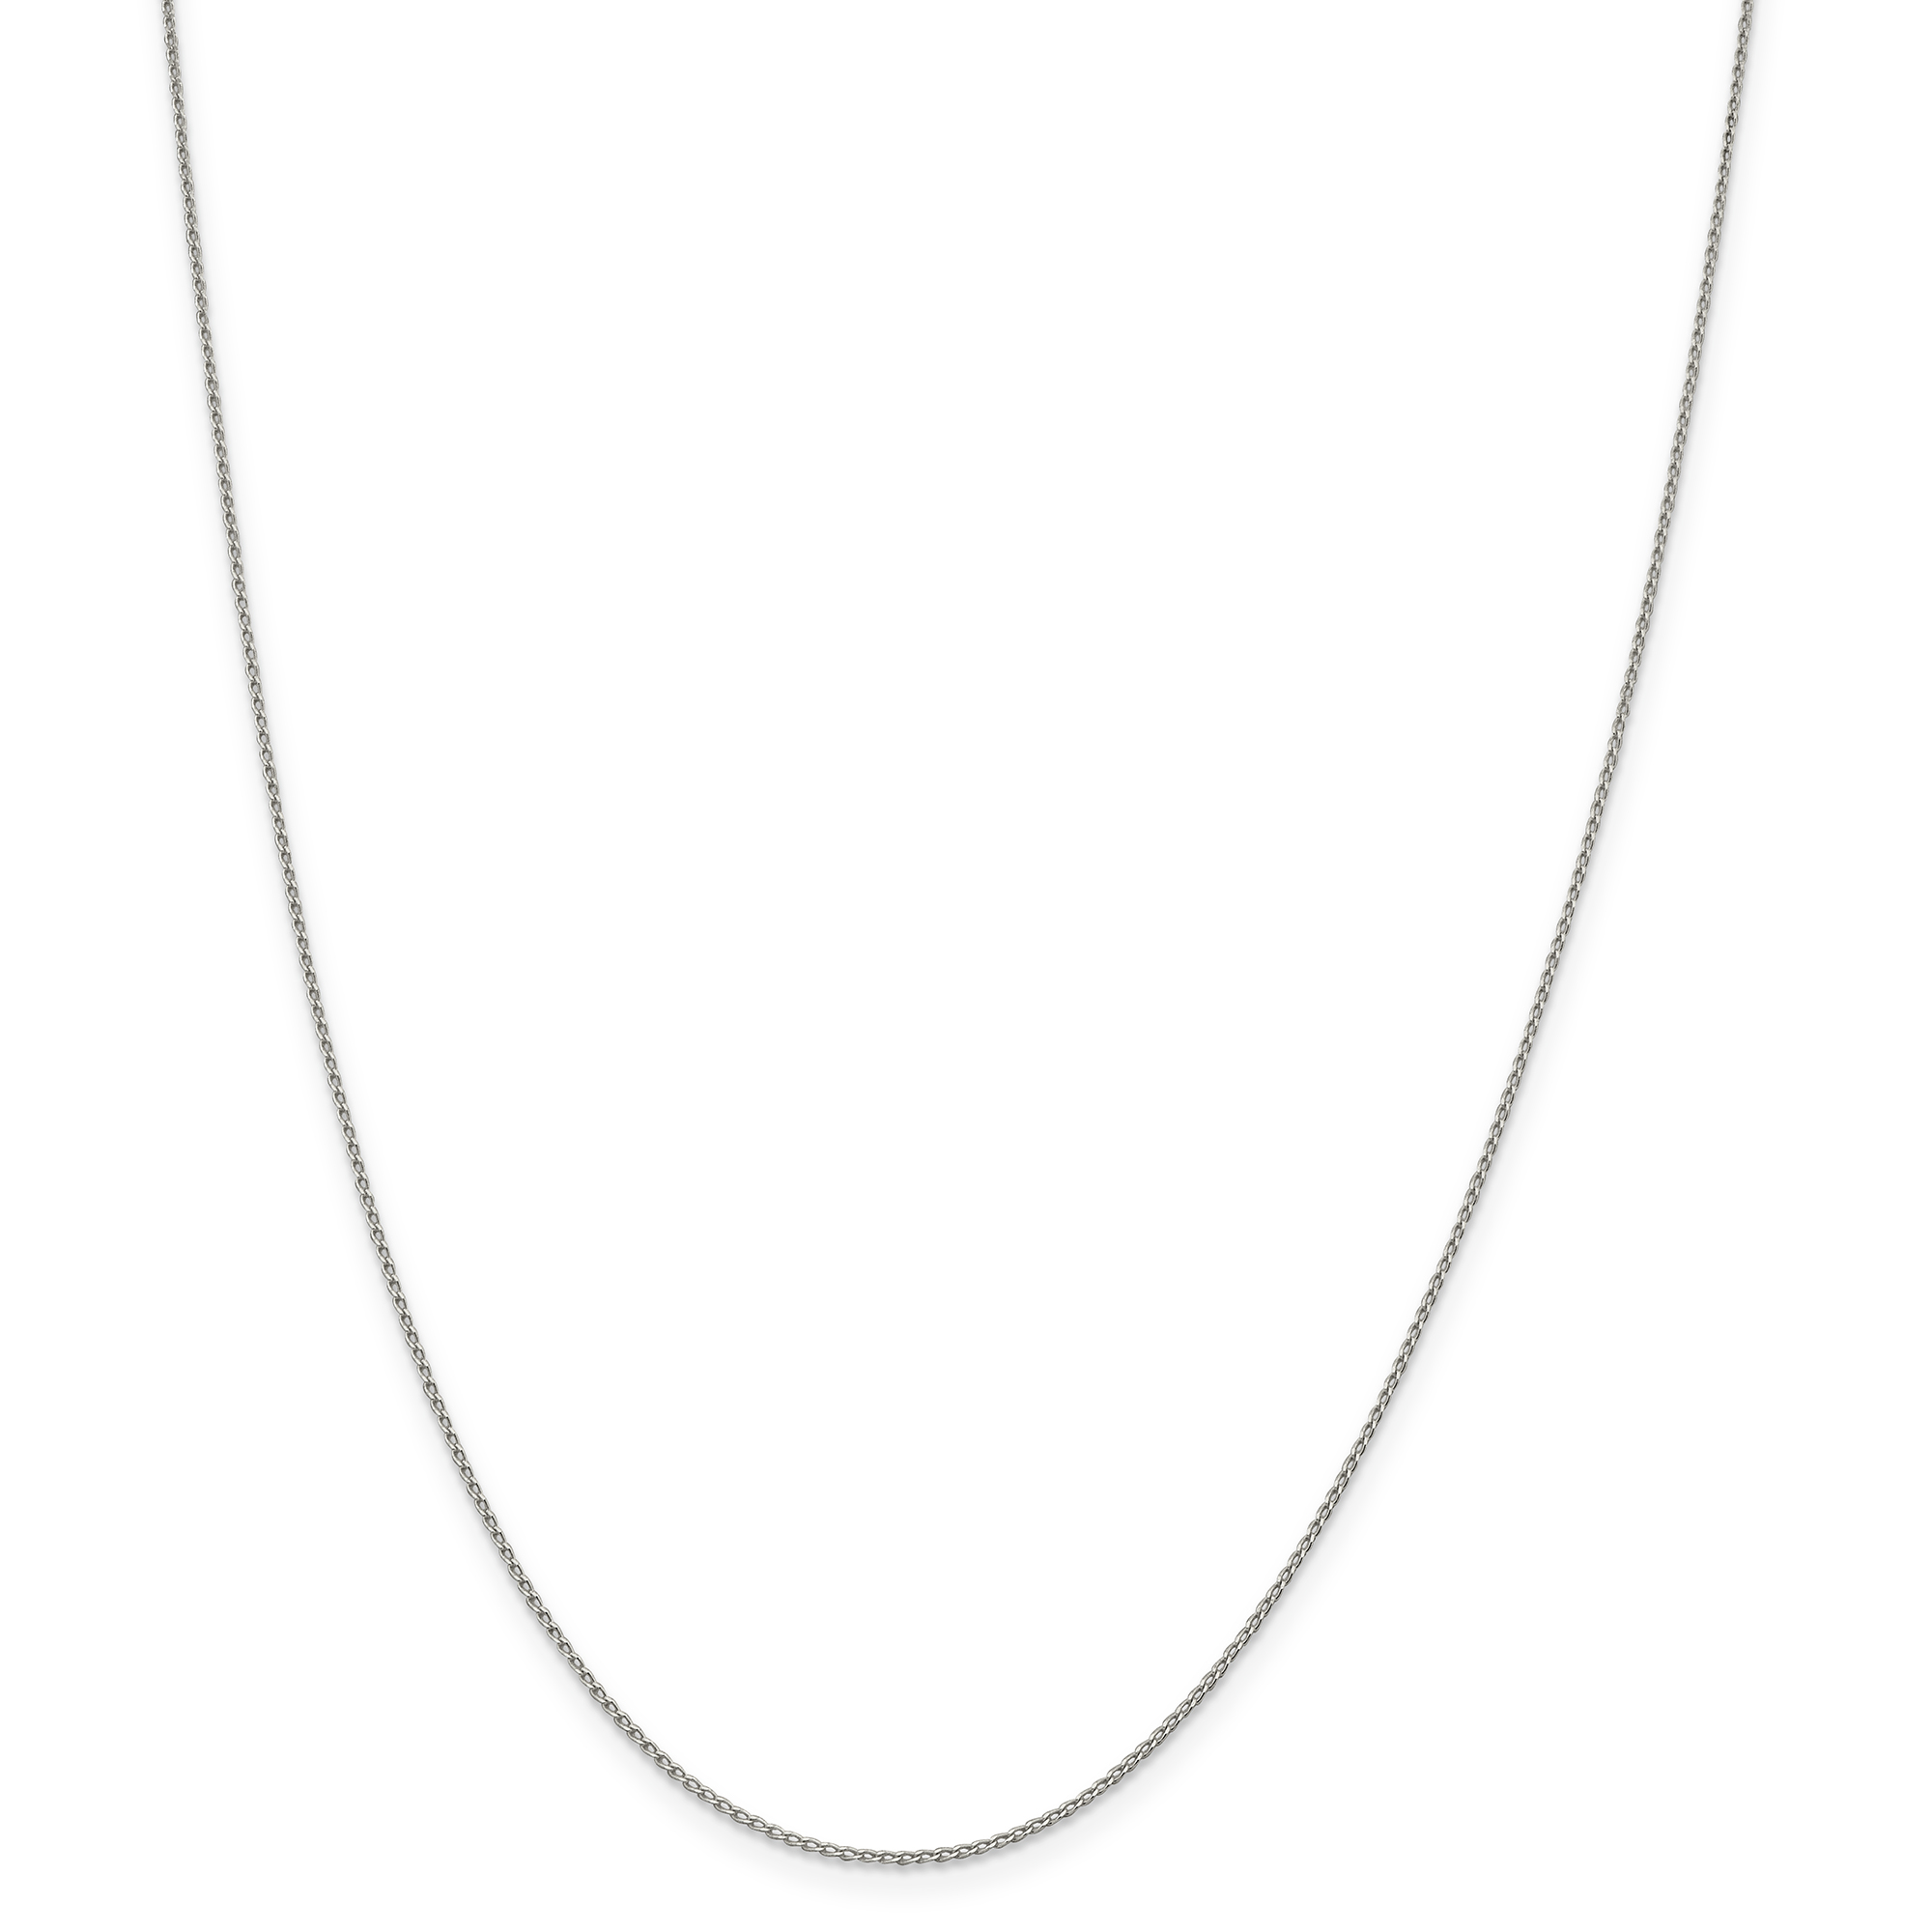 Sterling Silver 1.00mm Open Link Curb Chain | Weight: 0.68 grams, Length: 10mm, Width: 1mm